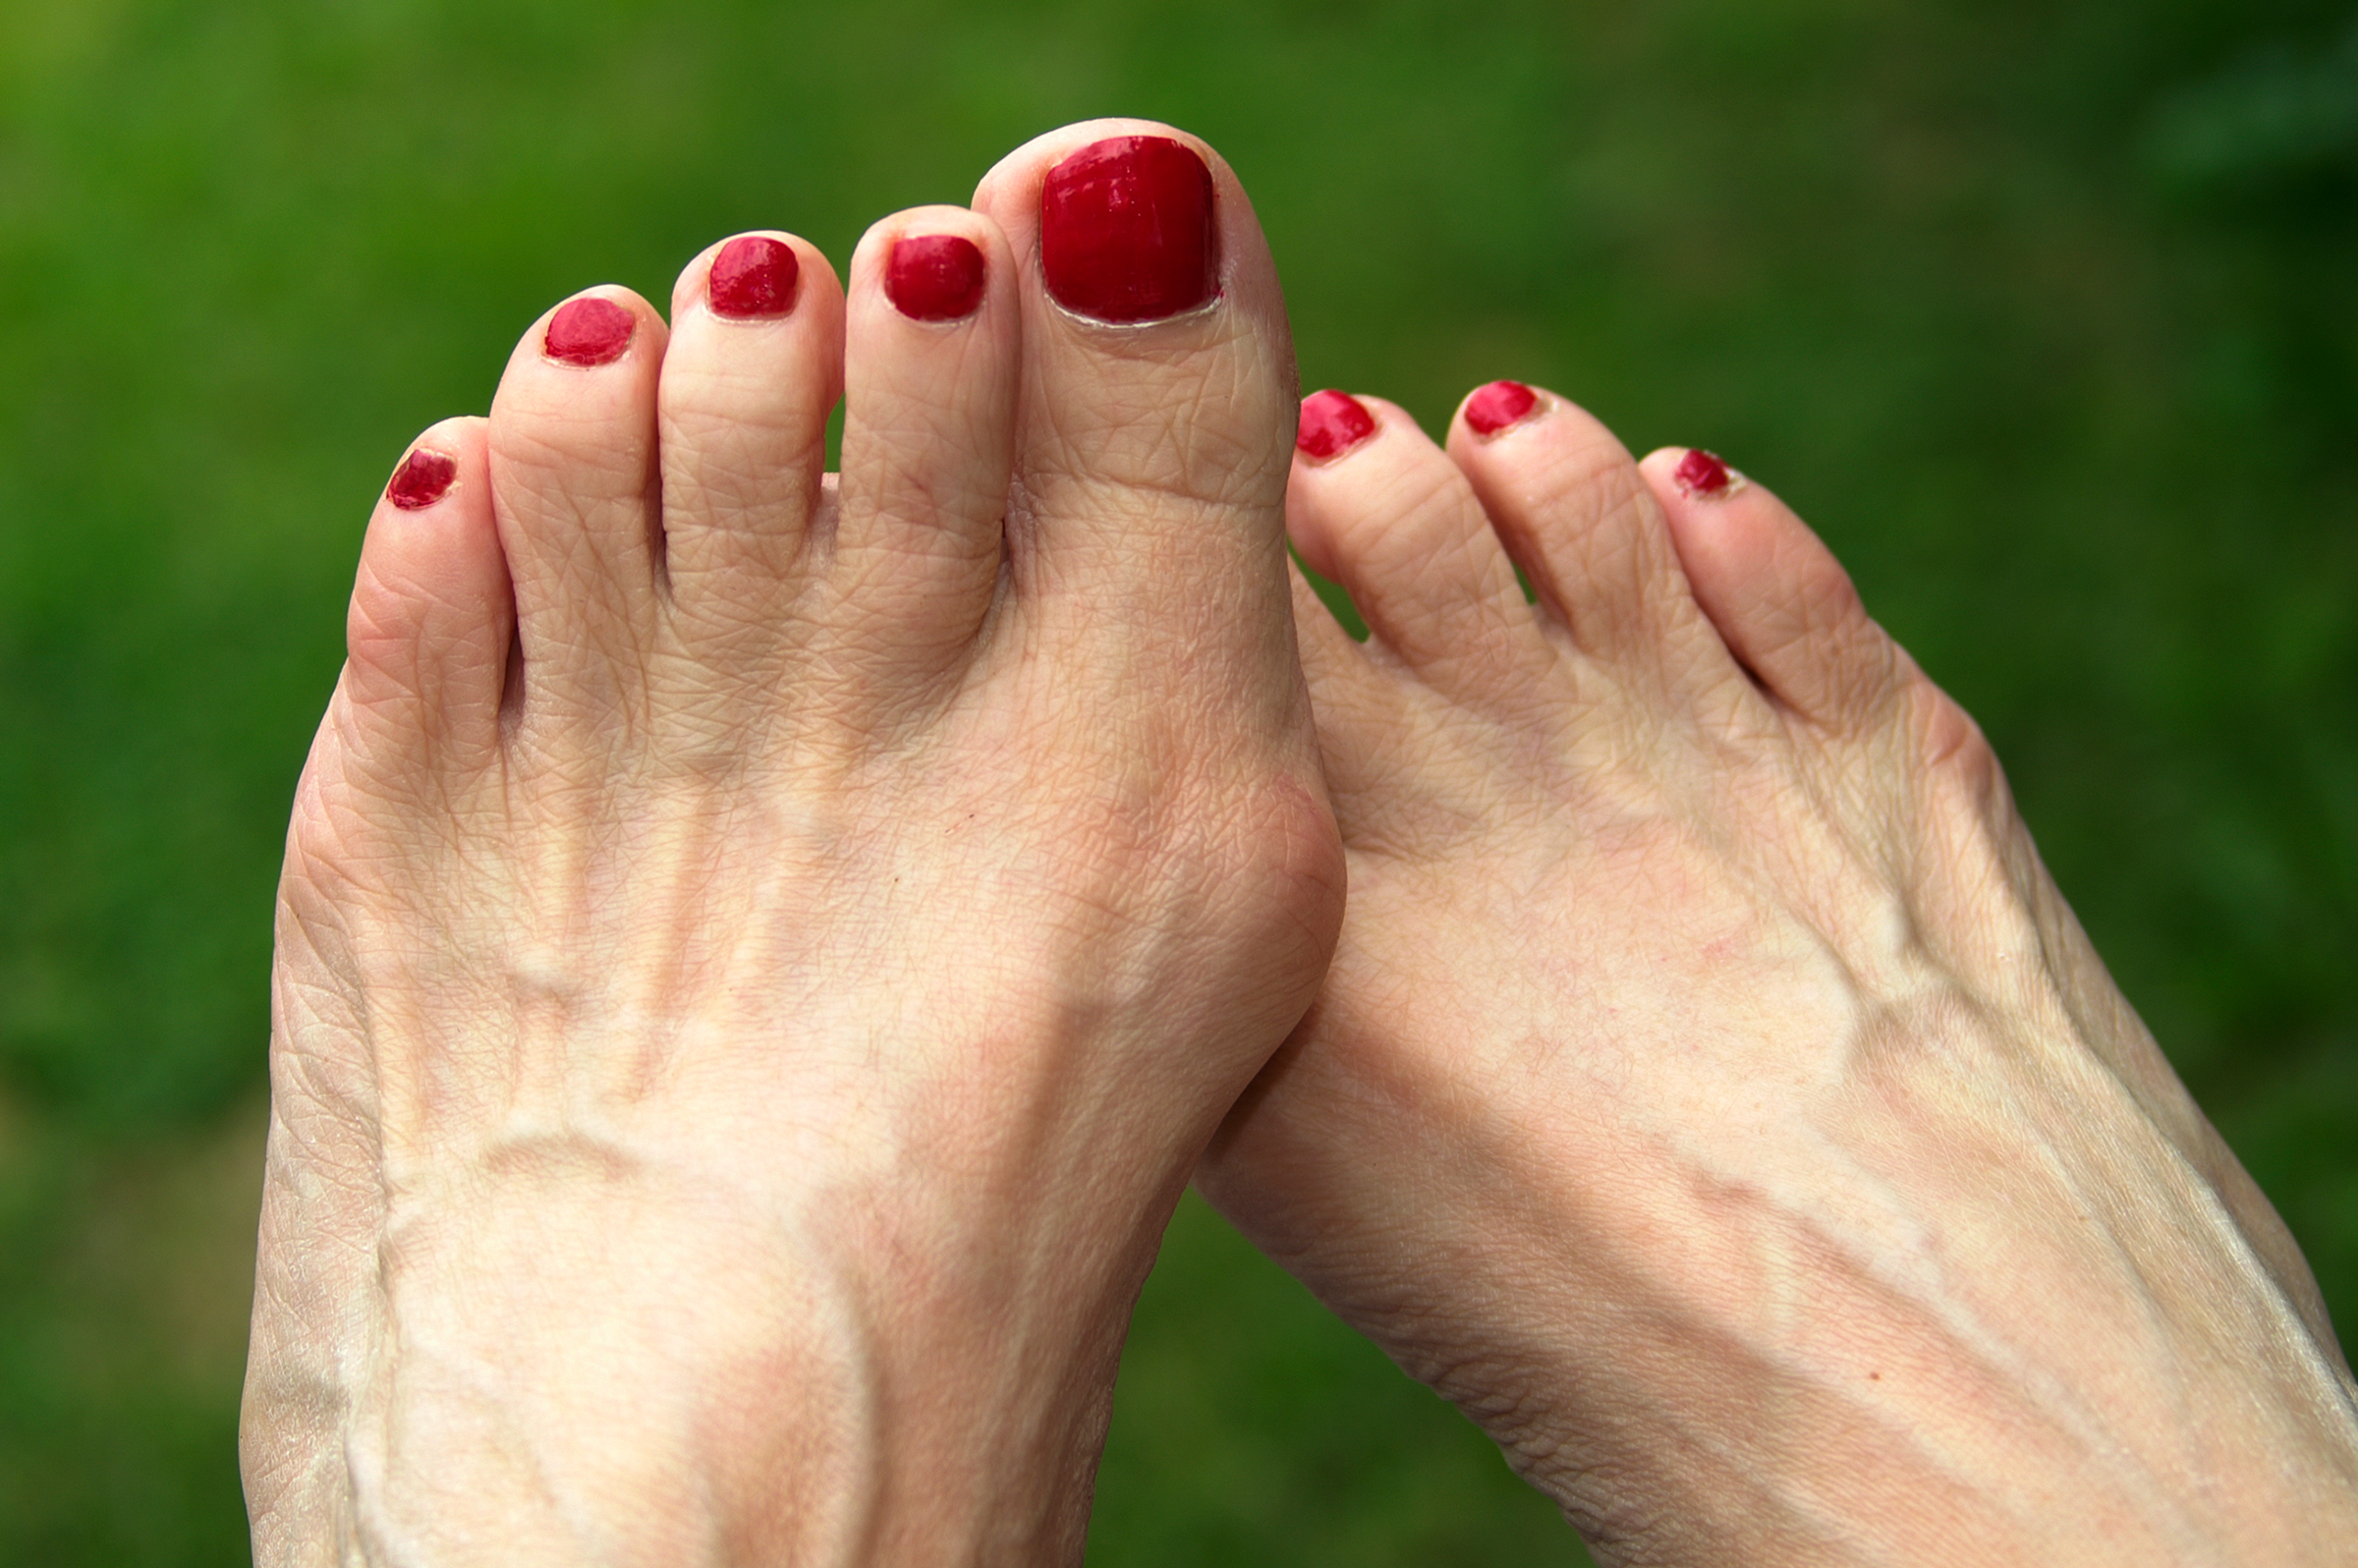 Why Do My Feet Hurt So Bad? 11 Causes